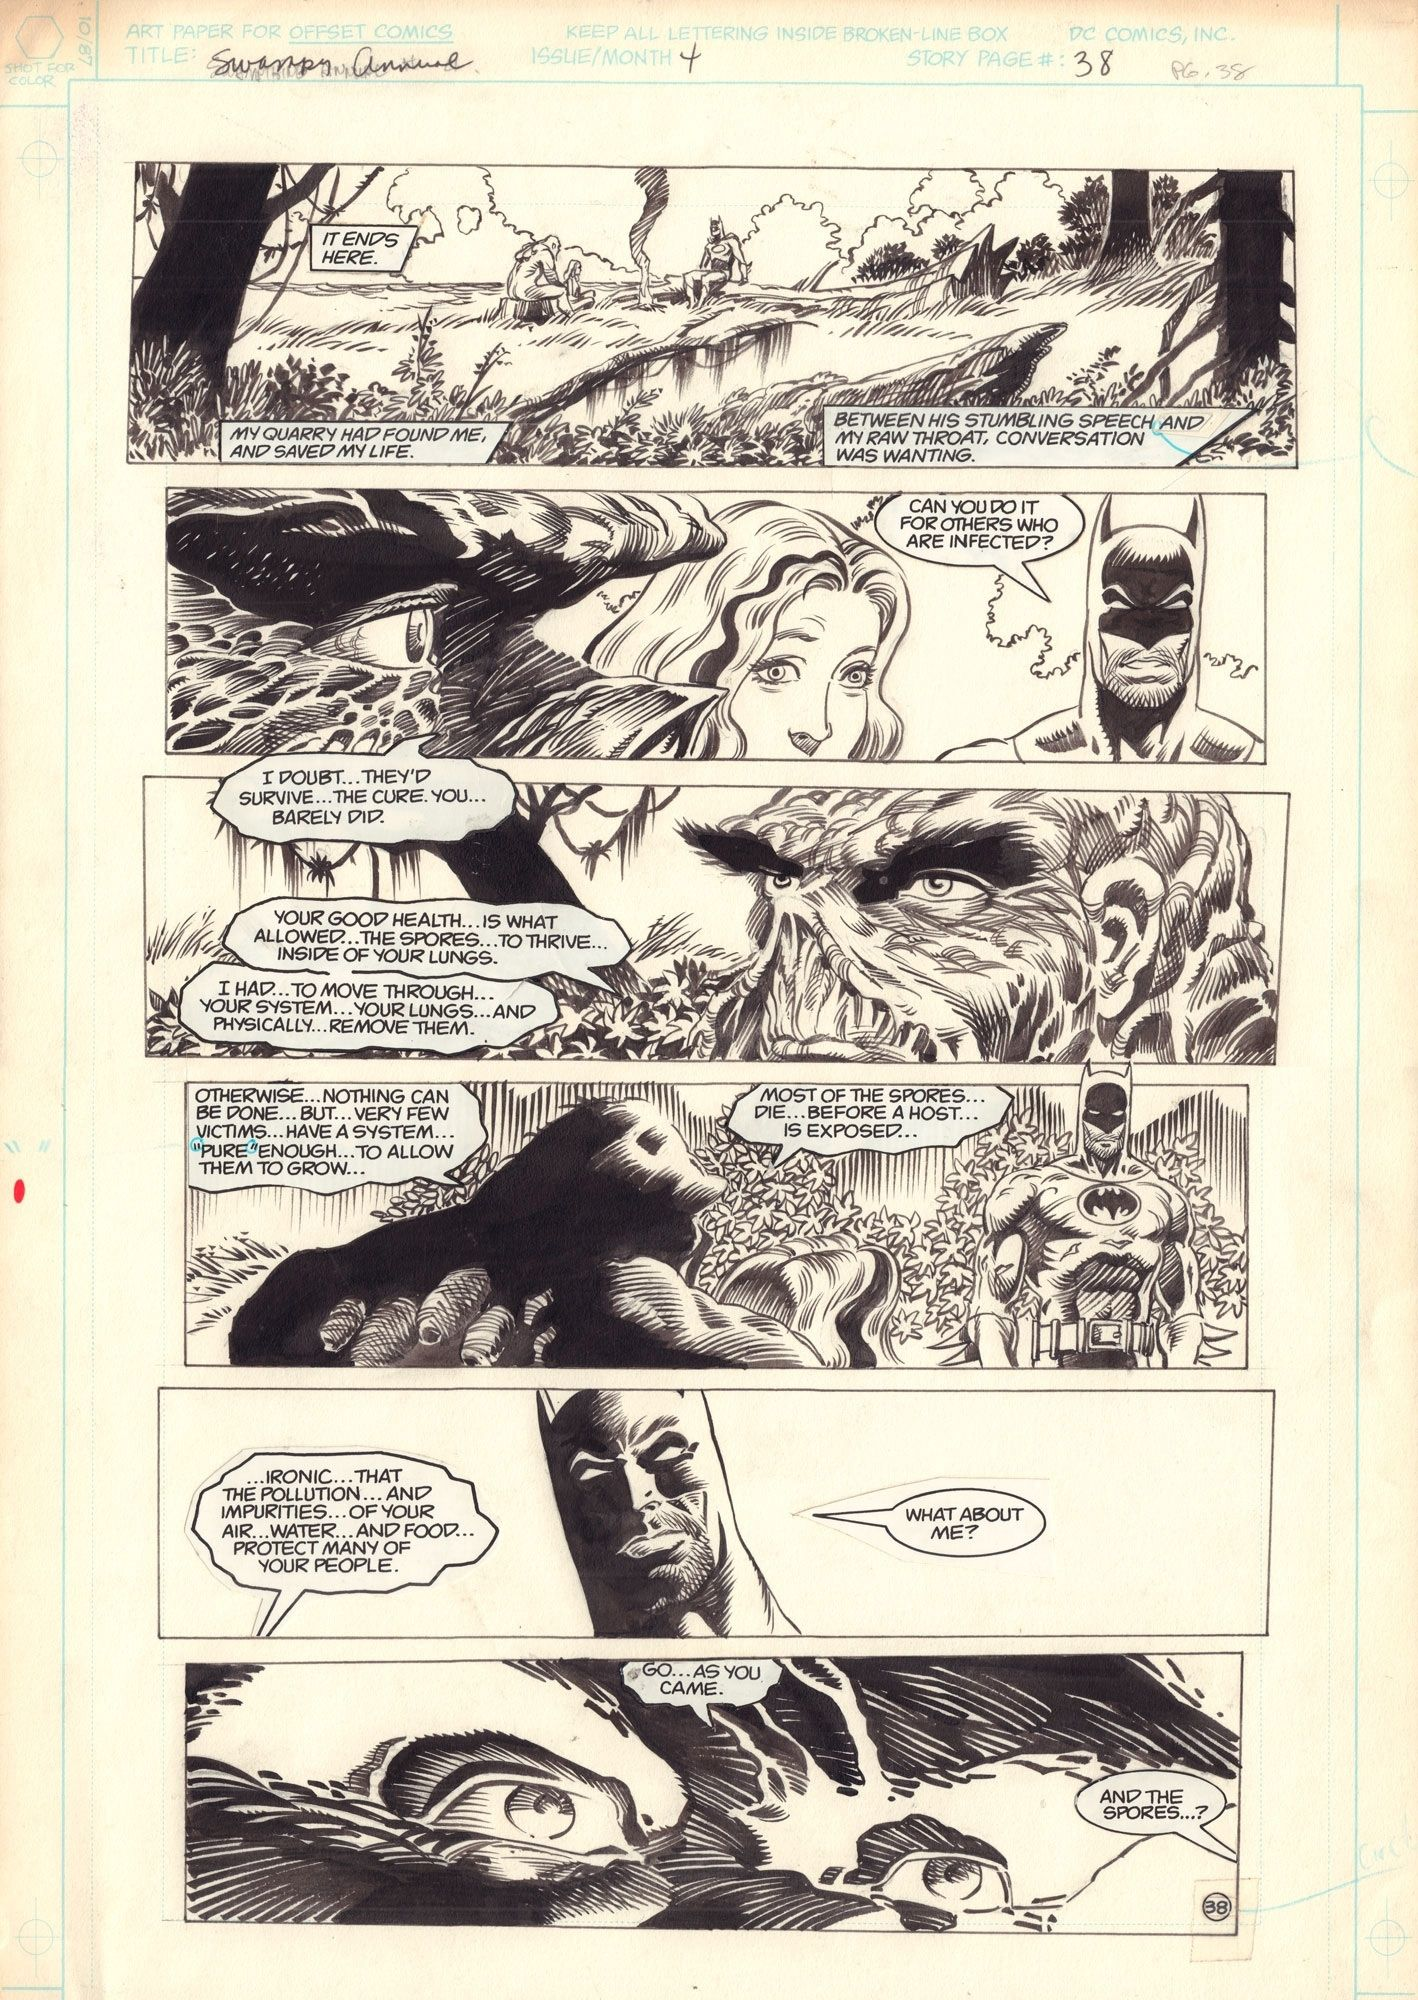 Swamp Thing Annual #4 / 38